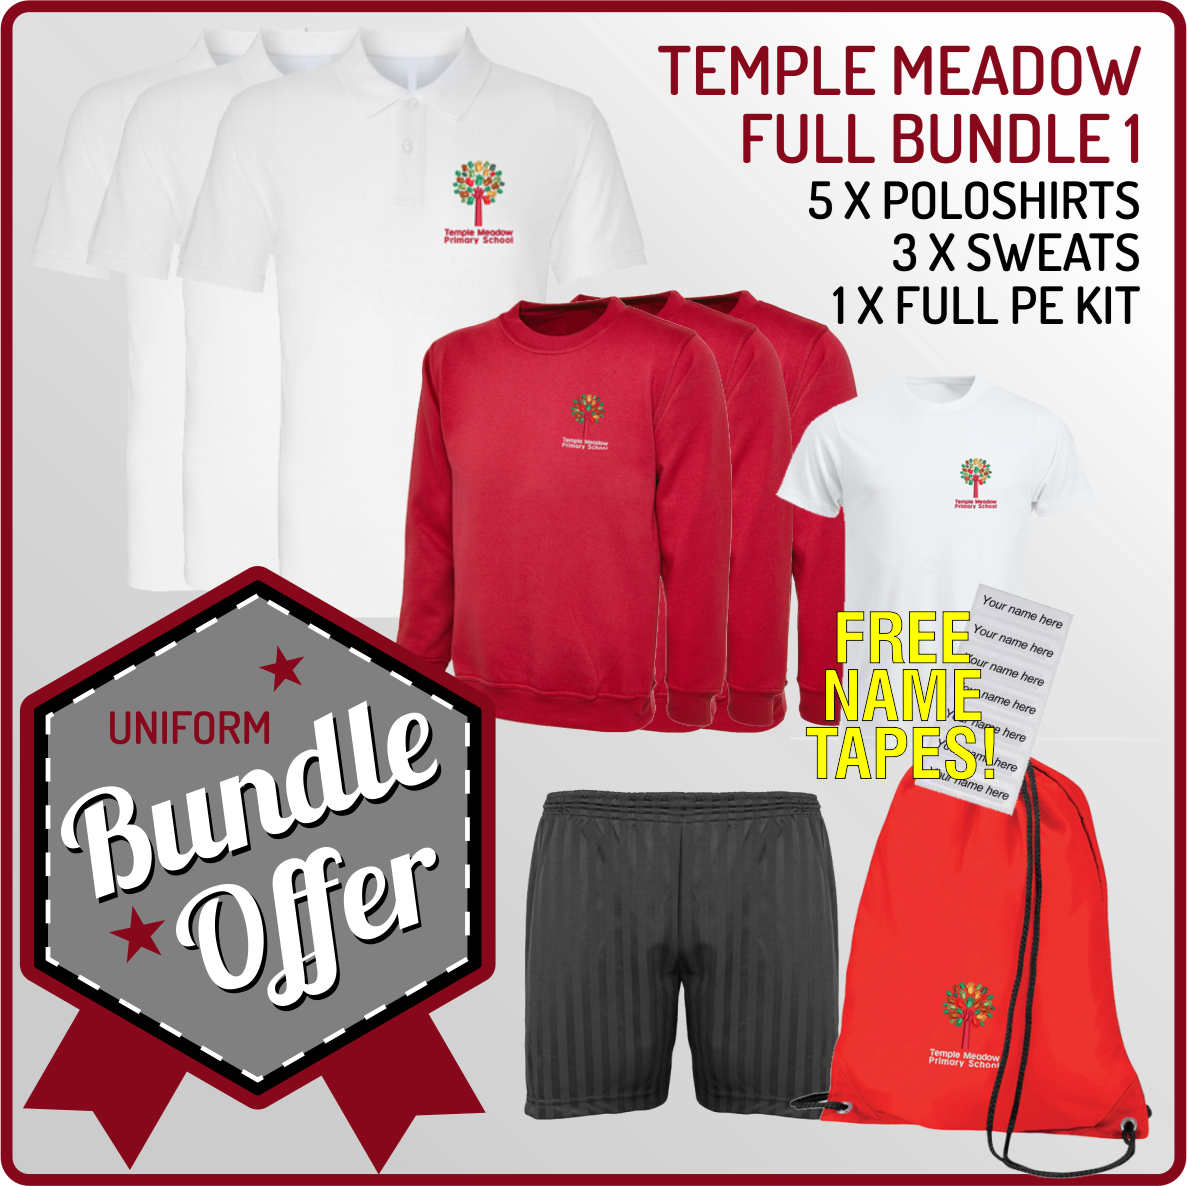 Bundle offer of 5 Poloshrts, 3 Sweatshirts, PE T, Shorts and PE Back with 12 Free name tapes!